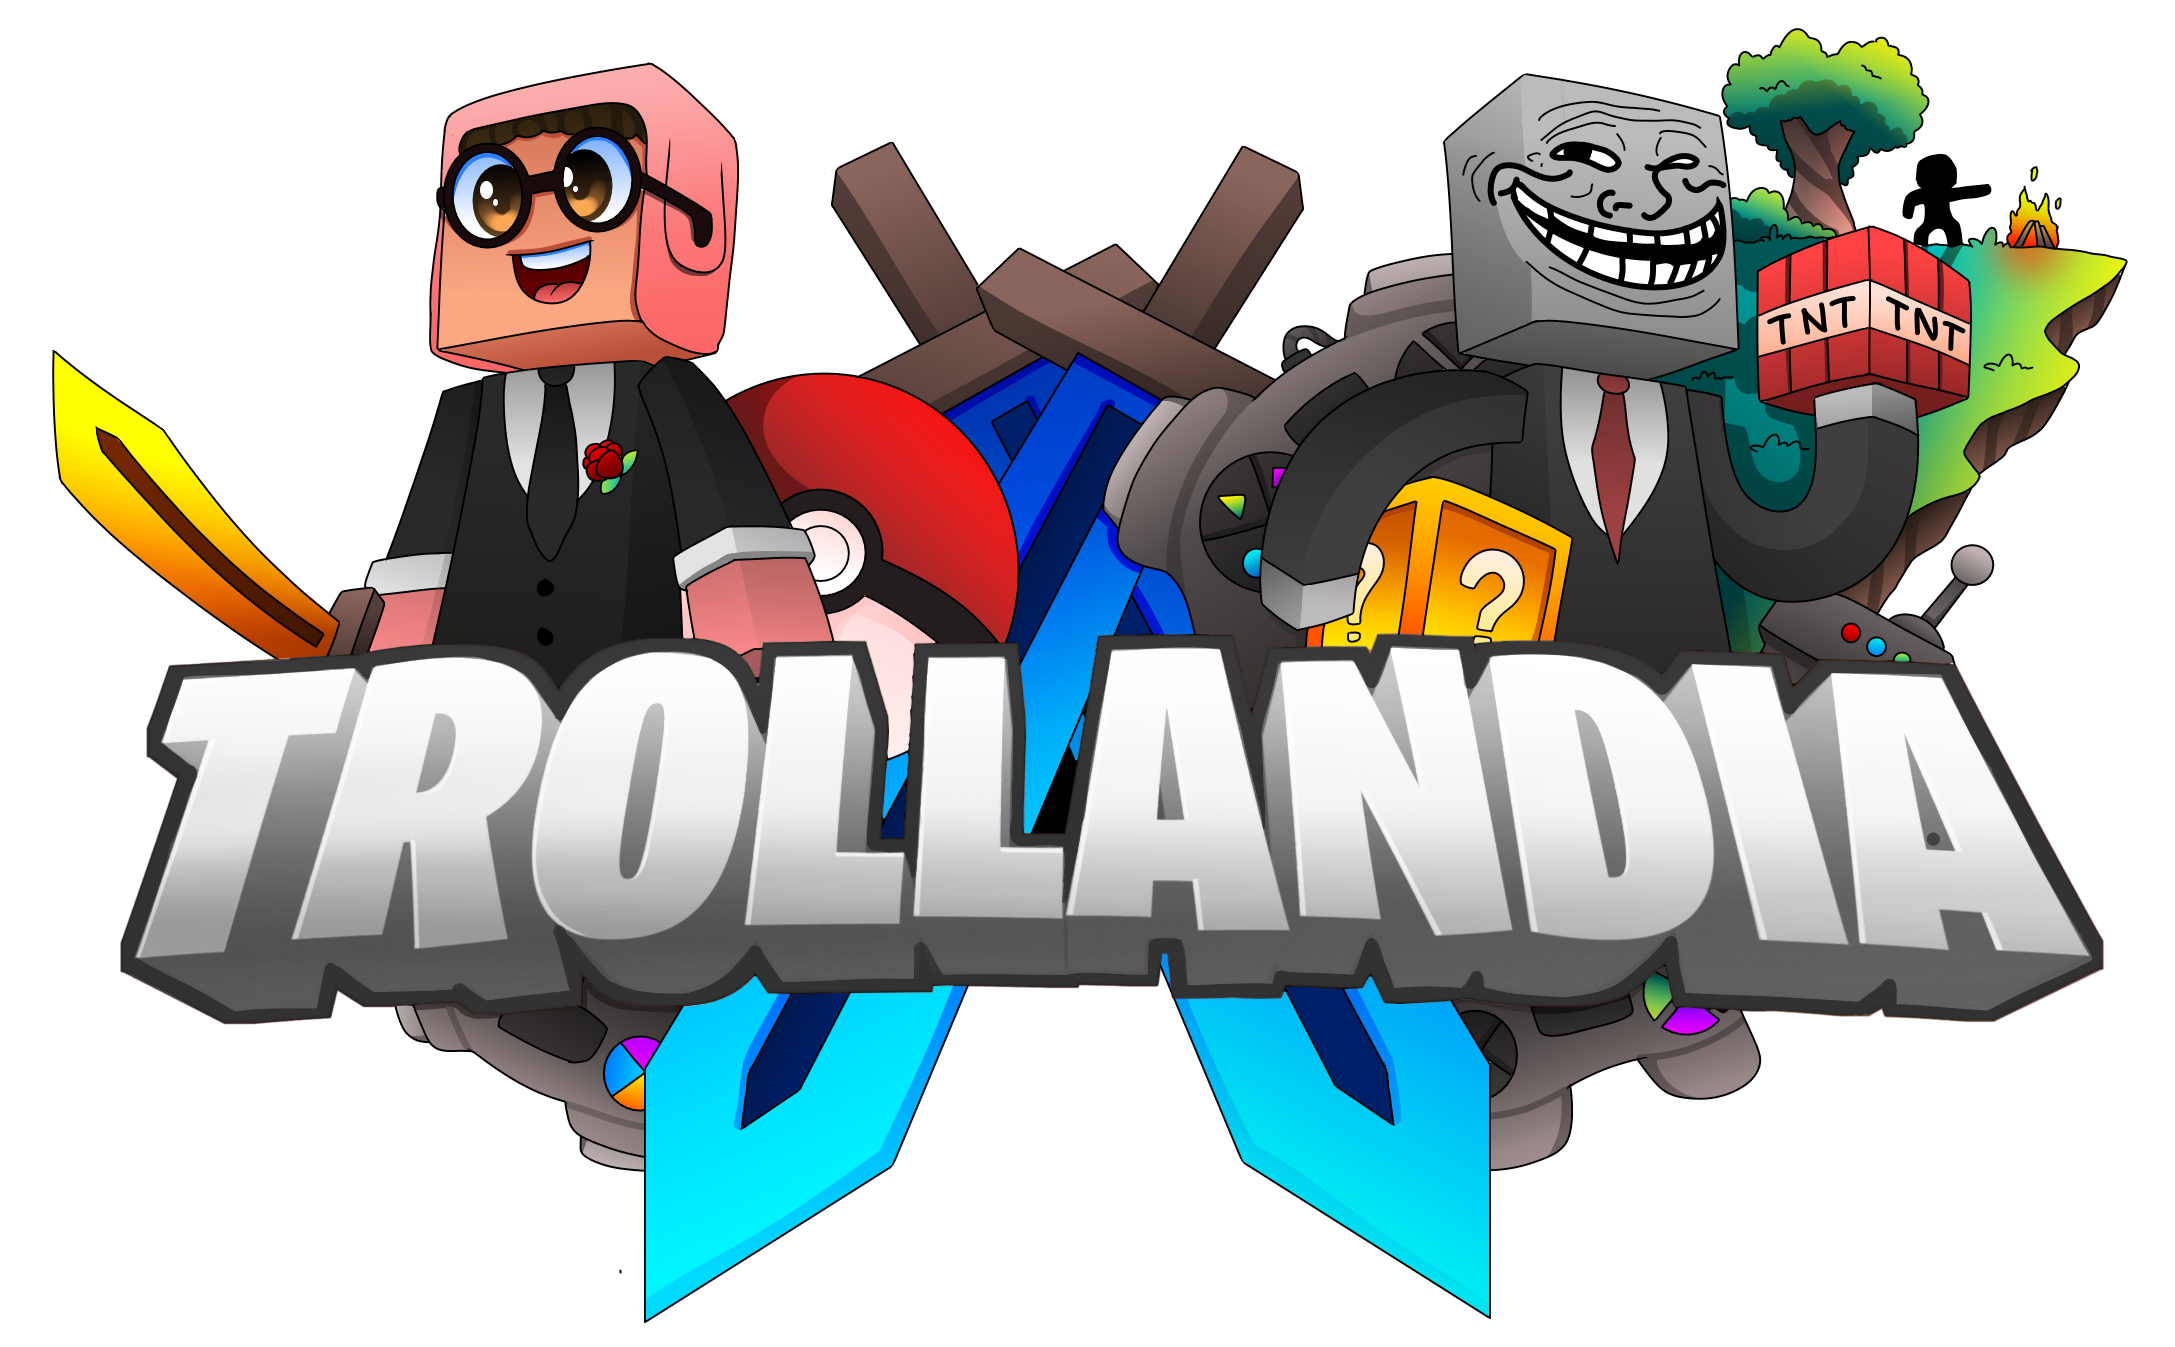 Trollandia Network